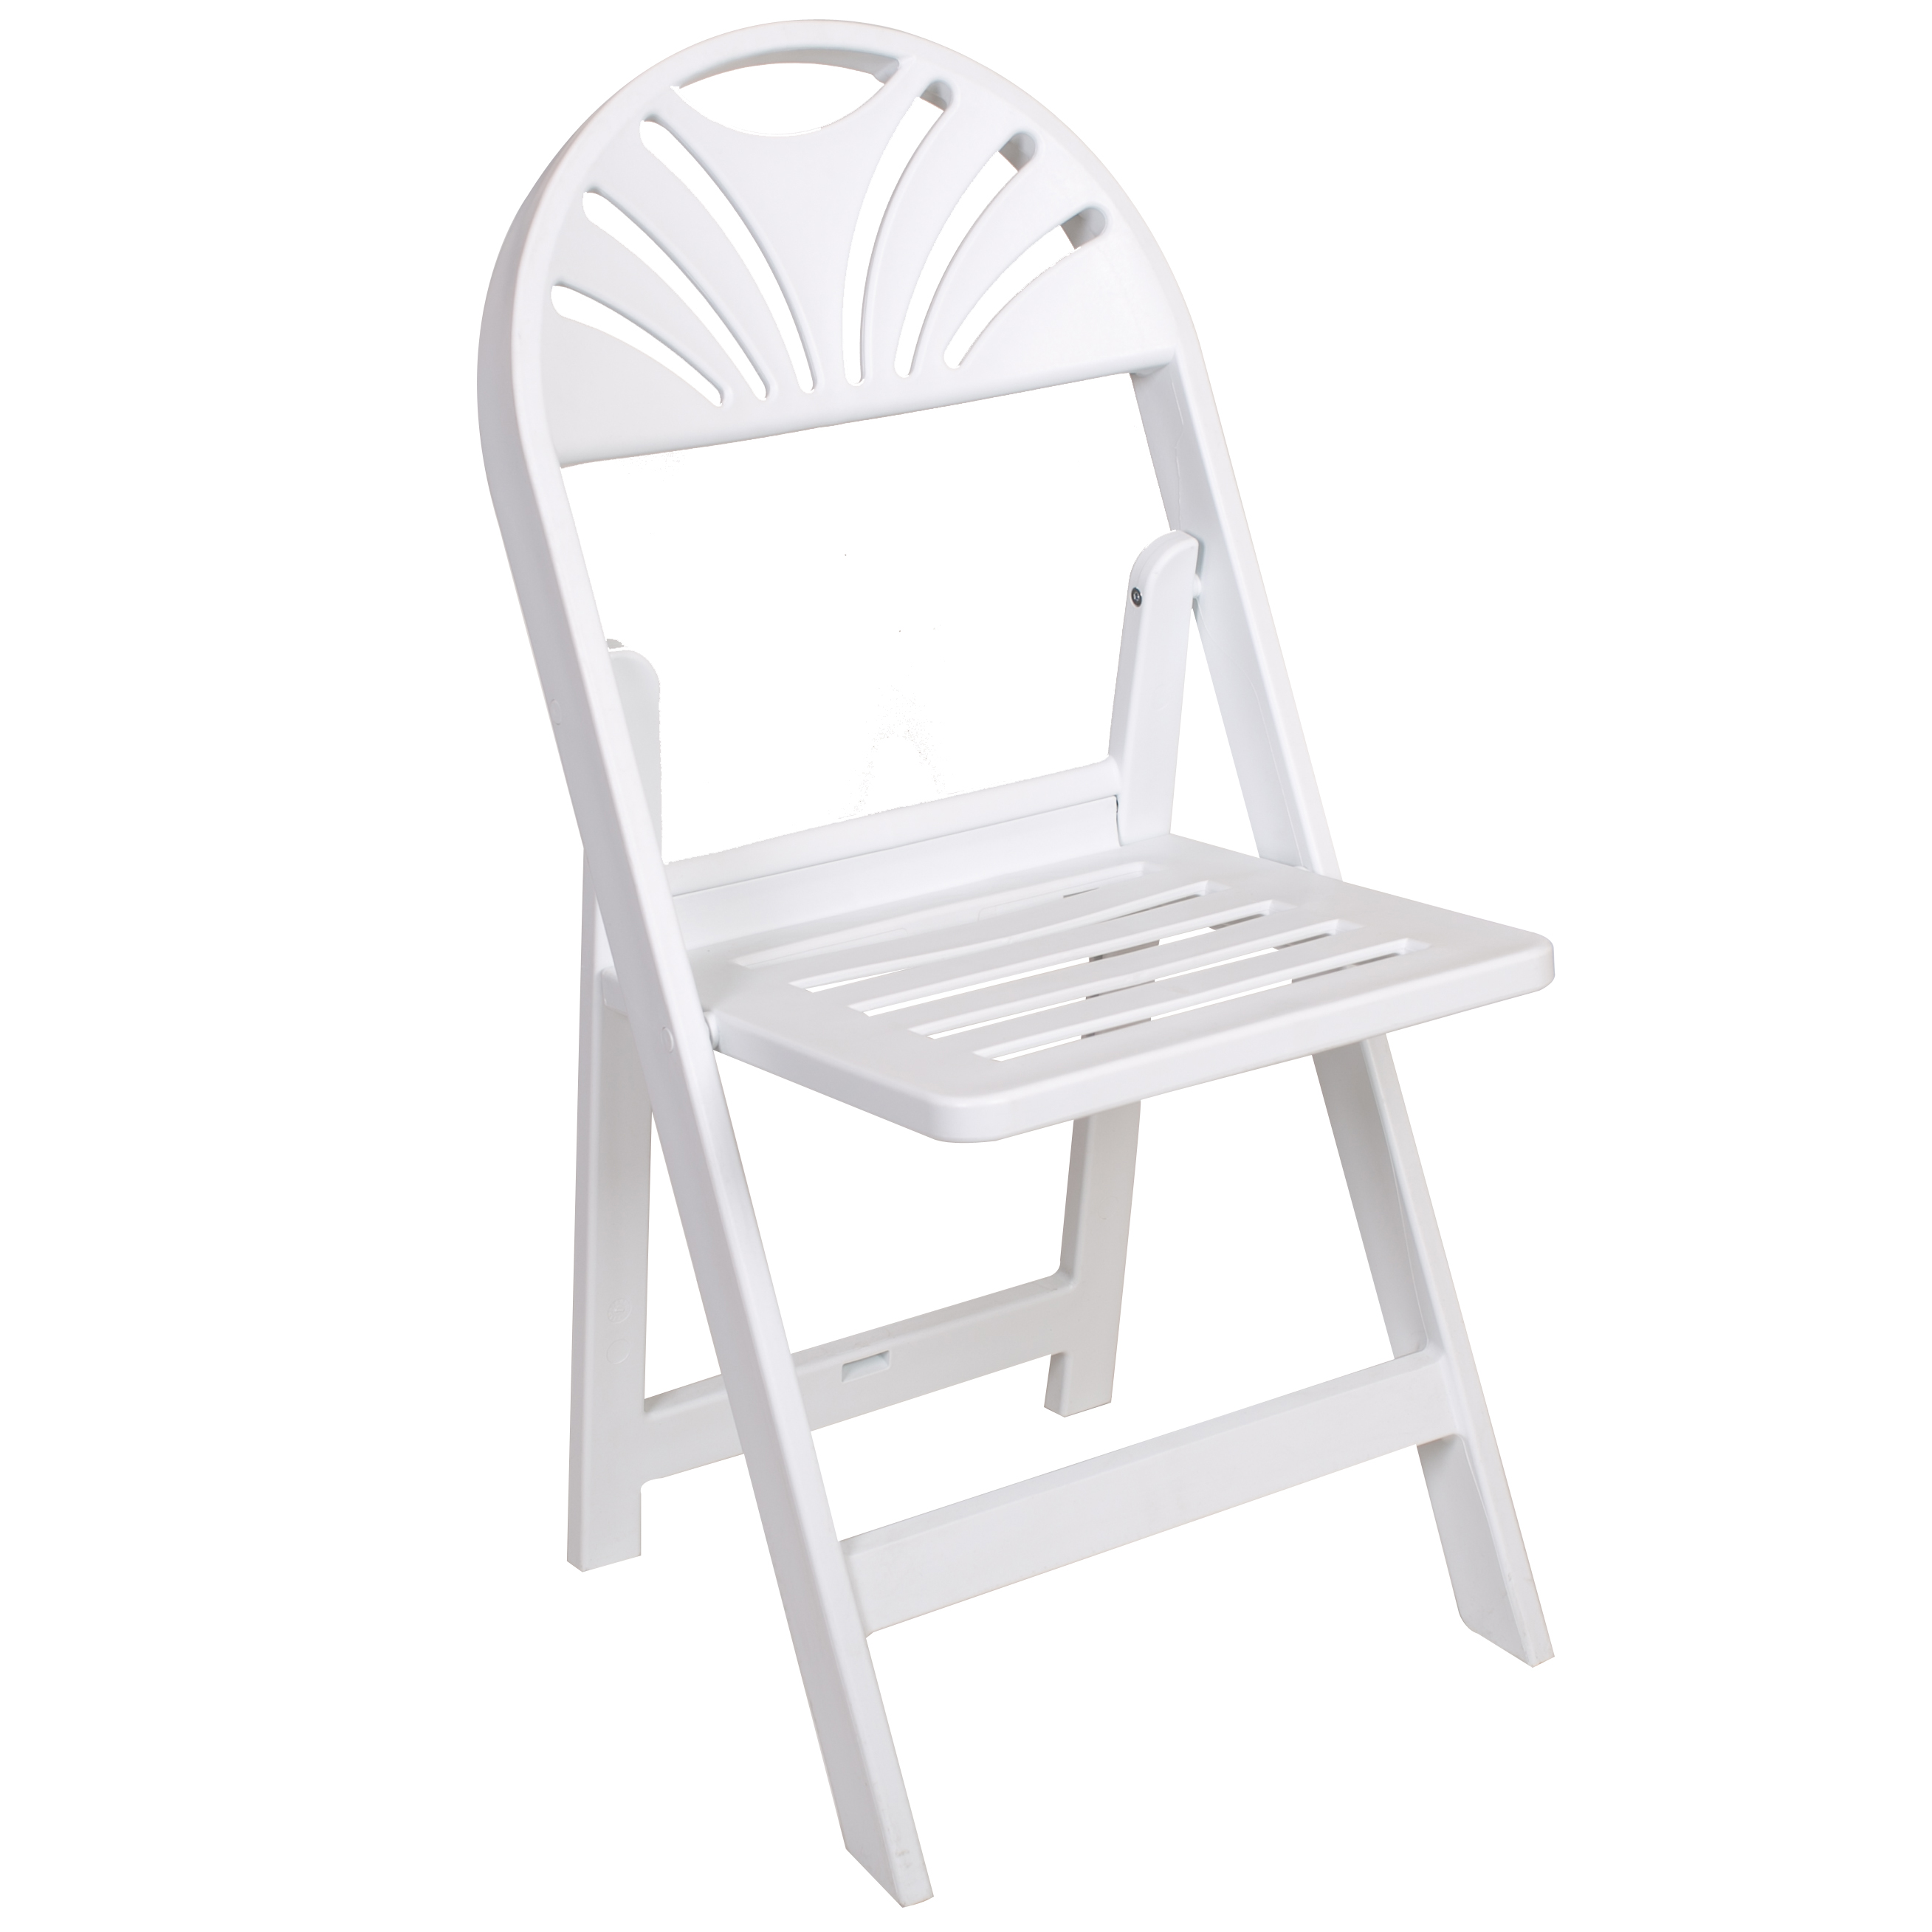 Fan back folding chair SF-T09 Featured Image